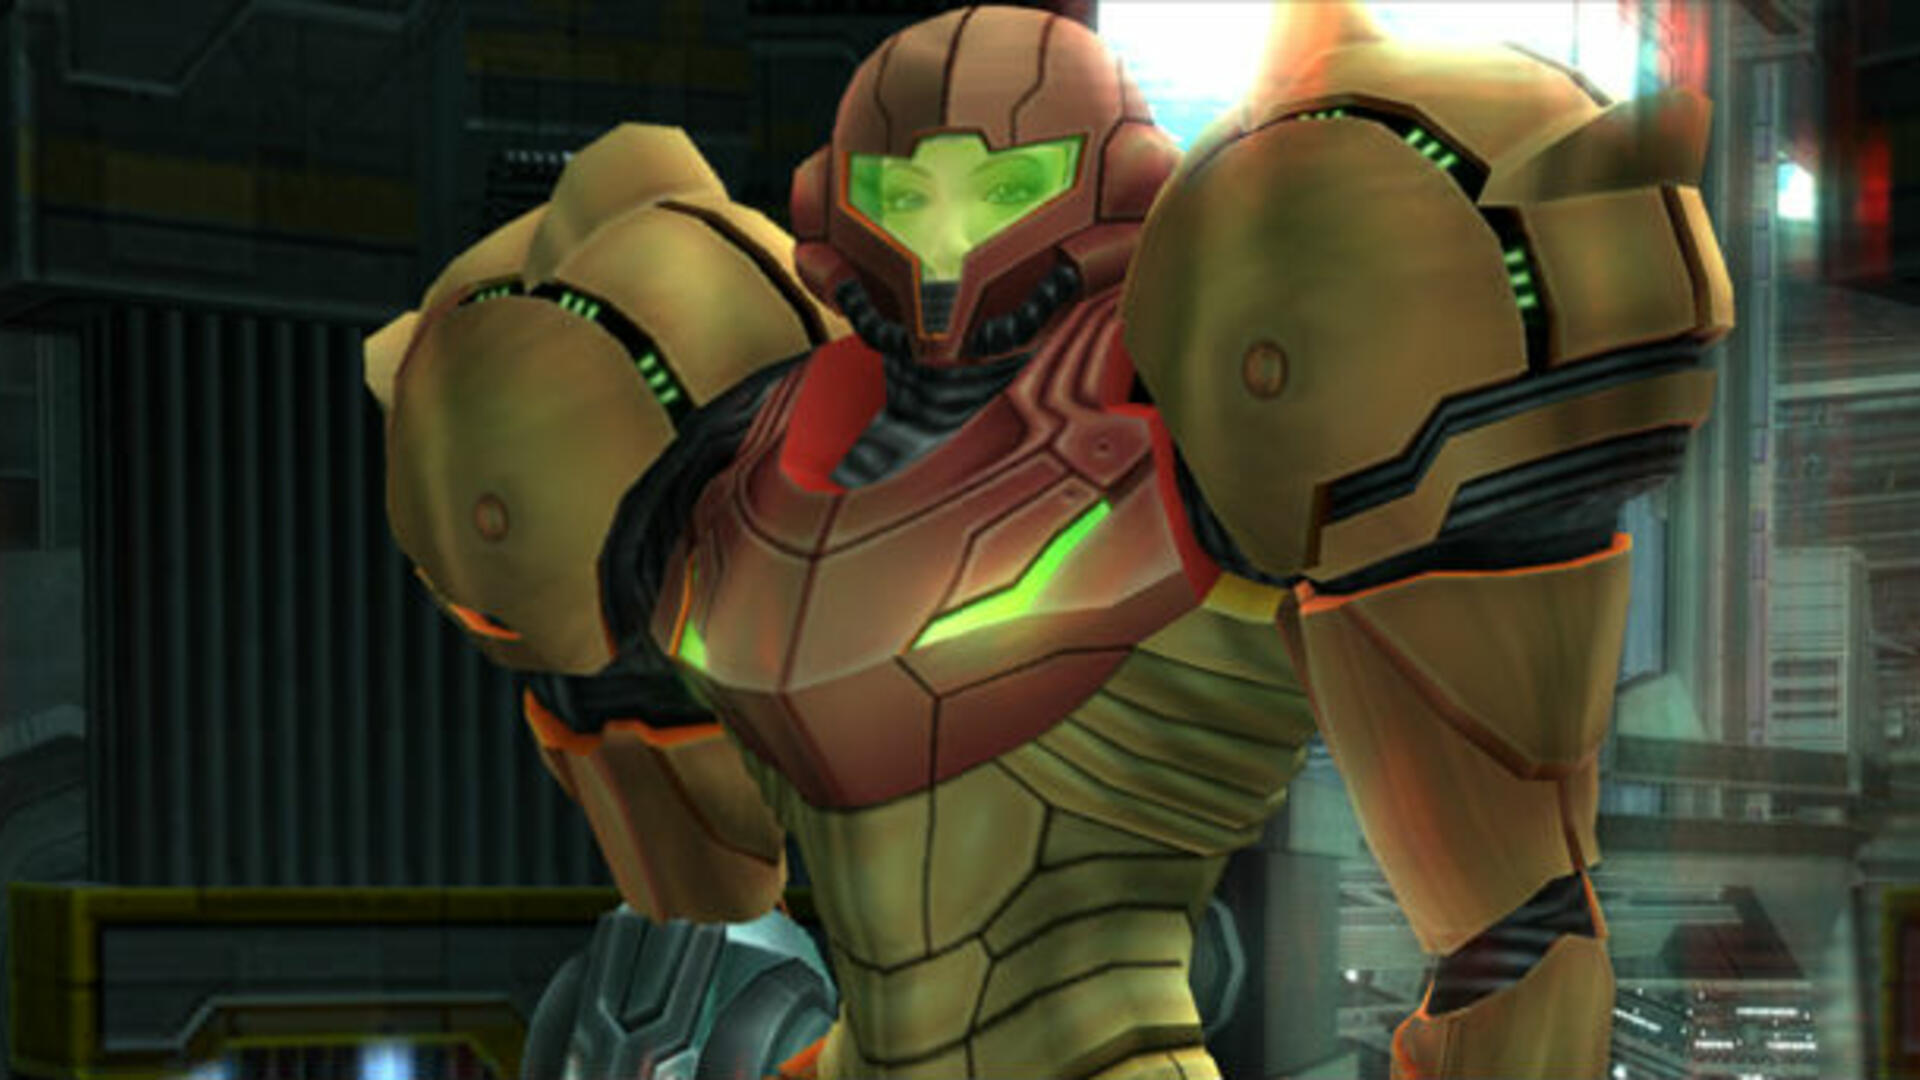 Metroid Prime Fans Are Still Discovering Awesome Details 15 Years Later